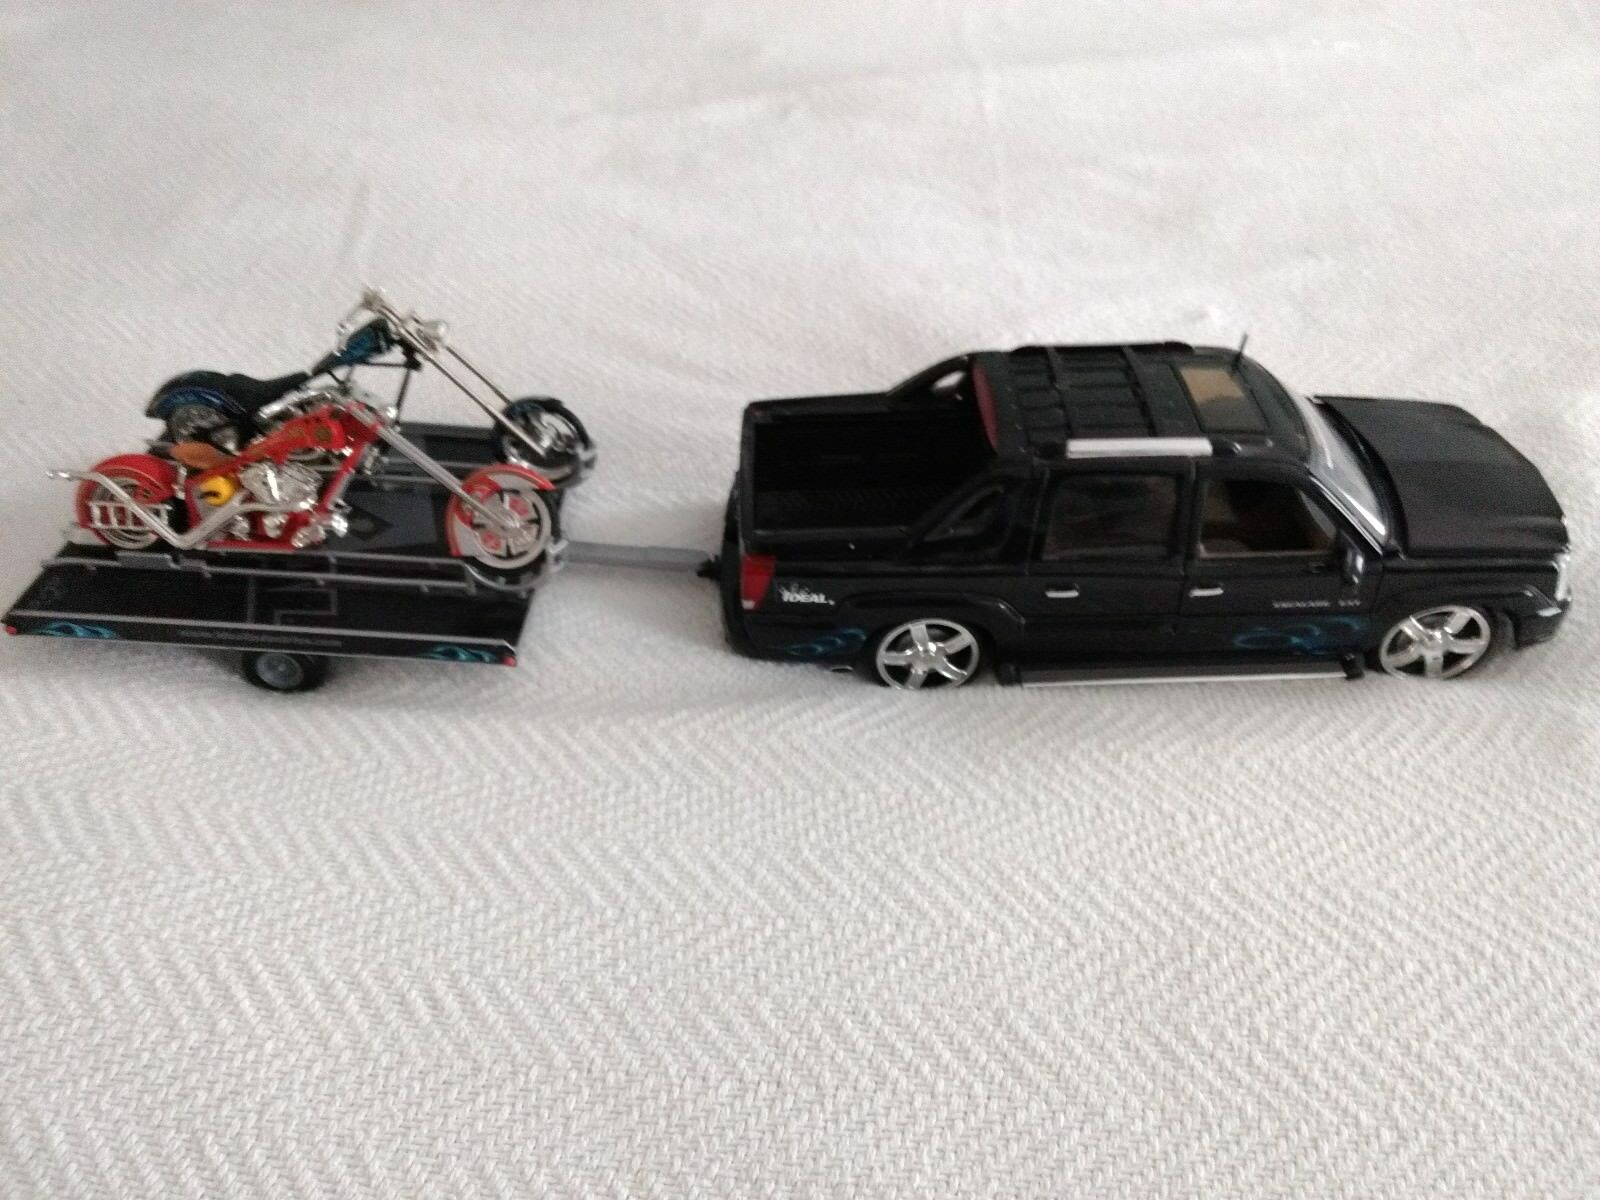 2005 Ideal Die Cast Cast Cast Escalade EXT towing 2 orange County chopper  motorcycles 709b05